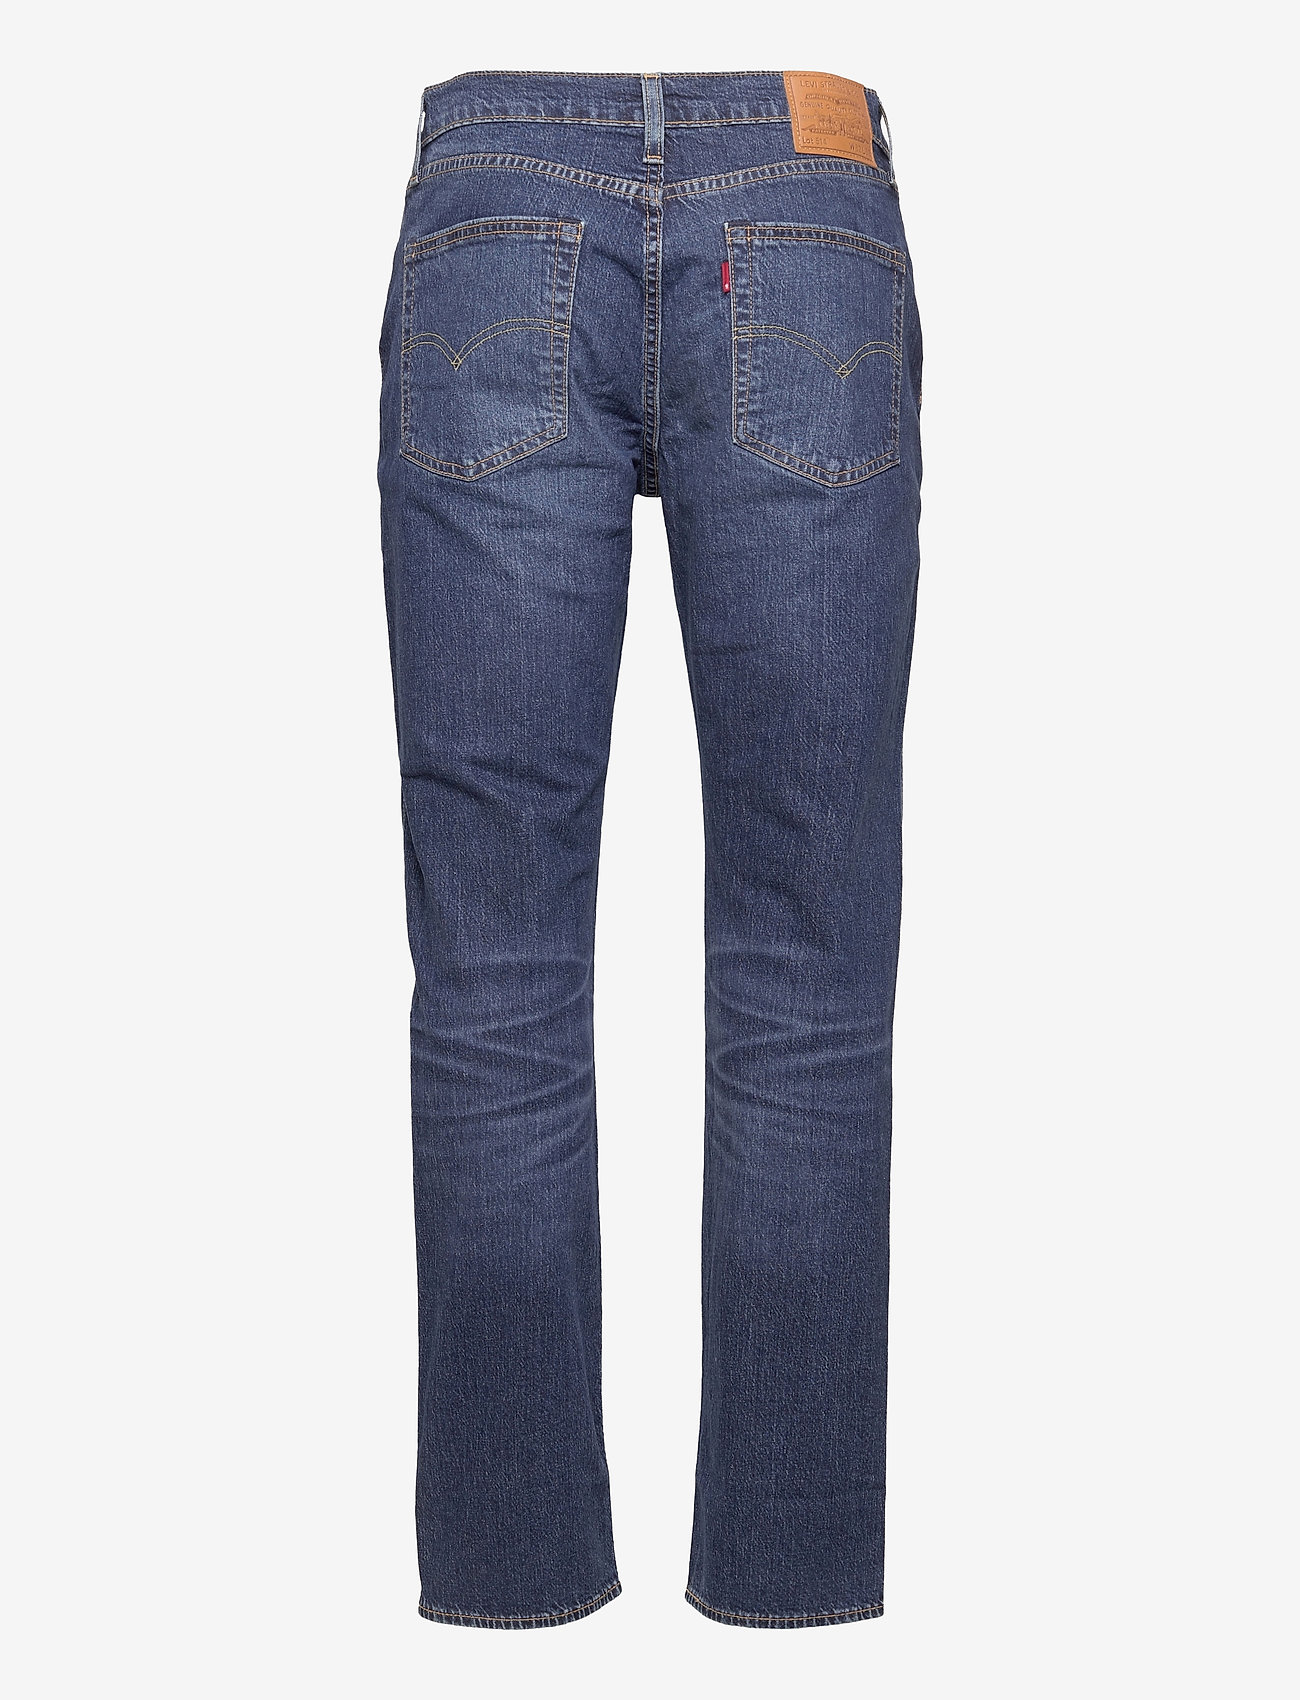 LEVI´S Men - 514 STRAIGHT LAURELHURST MYSEL - relaxed jeans - med indigo - flat finish - 1